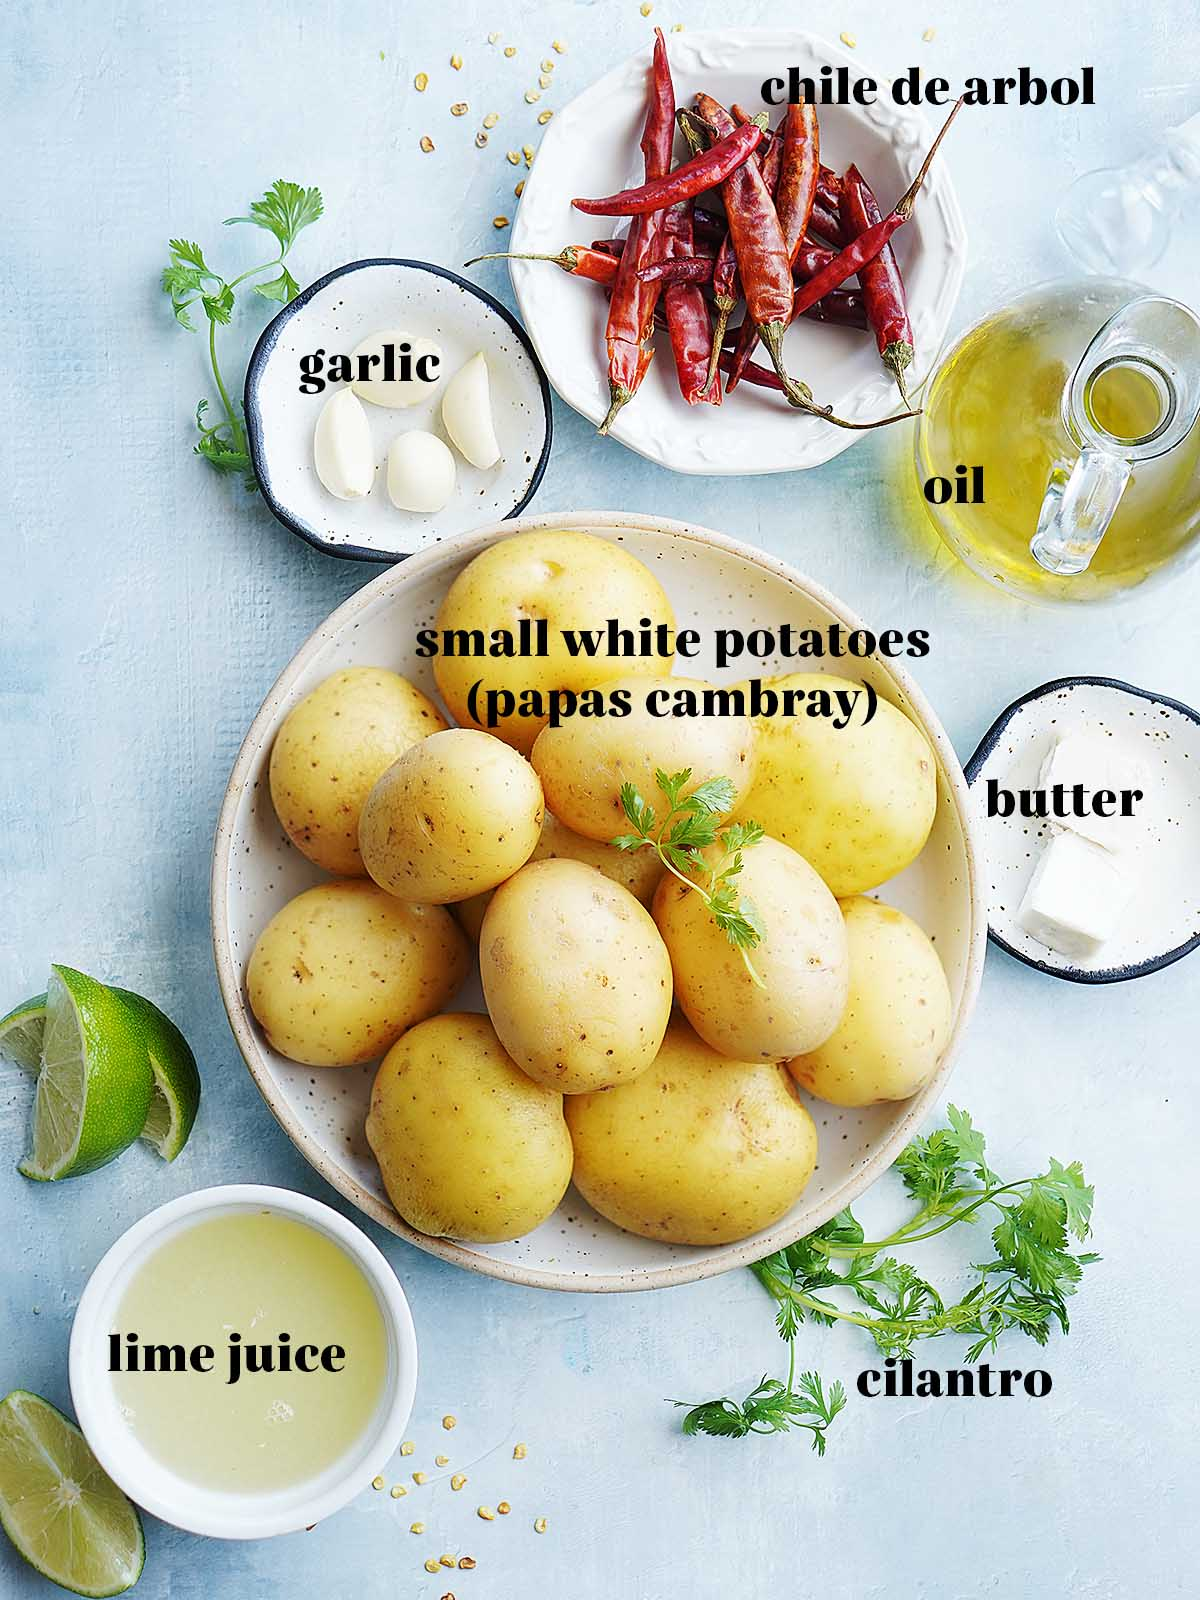 Ingredients on bowls: small yellow potatoes, lime juice, butter, cilantro, oil, garlic, chile de arbol peppers.